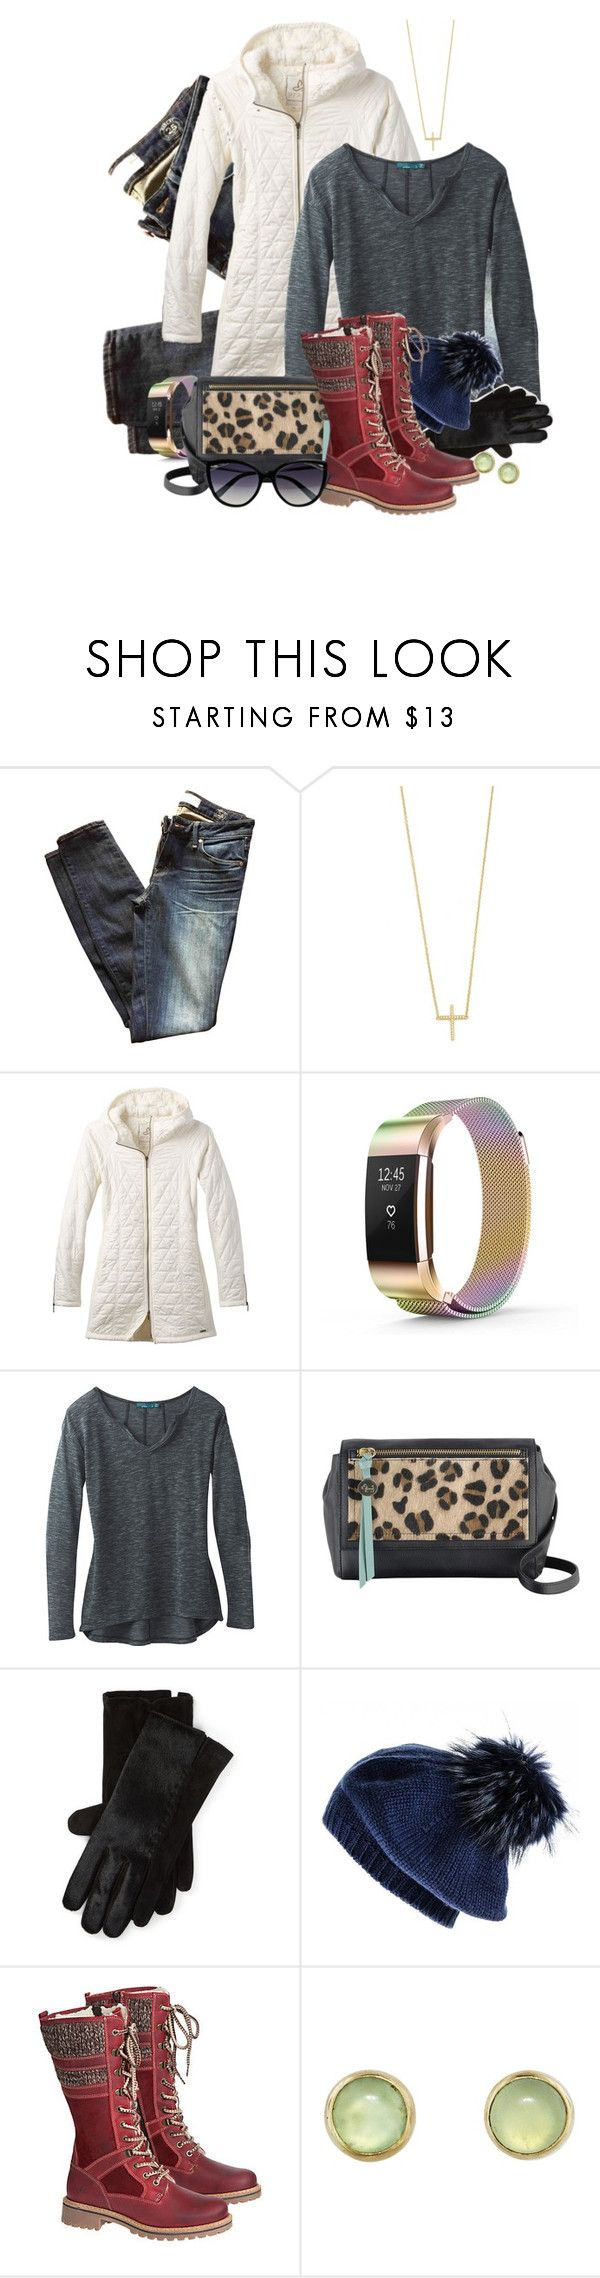 """""""Untitled #2614"""" by anfernee-131 ❤ liked on Polyvore featuring Marc by Marc Jacobs, Jennifer Meyer Jewelry, prAna, Radley, Polo Ralph Lauren, Black, Bos. & Co., Melissa Joy Manning and La Perla"""